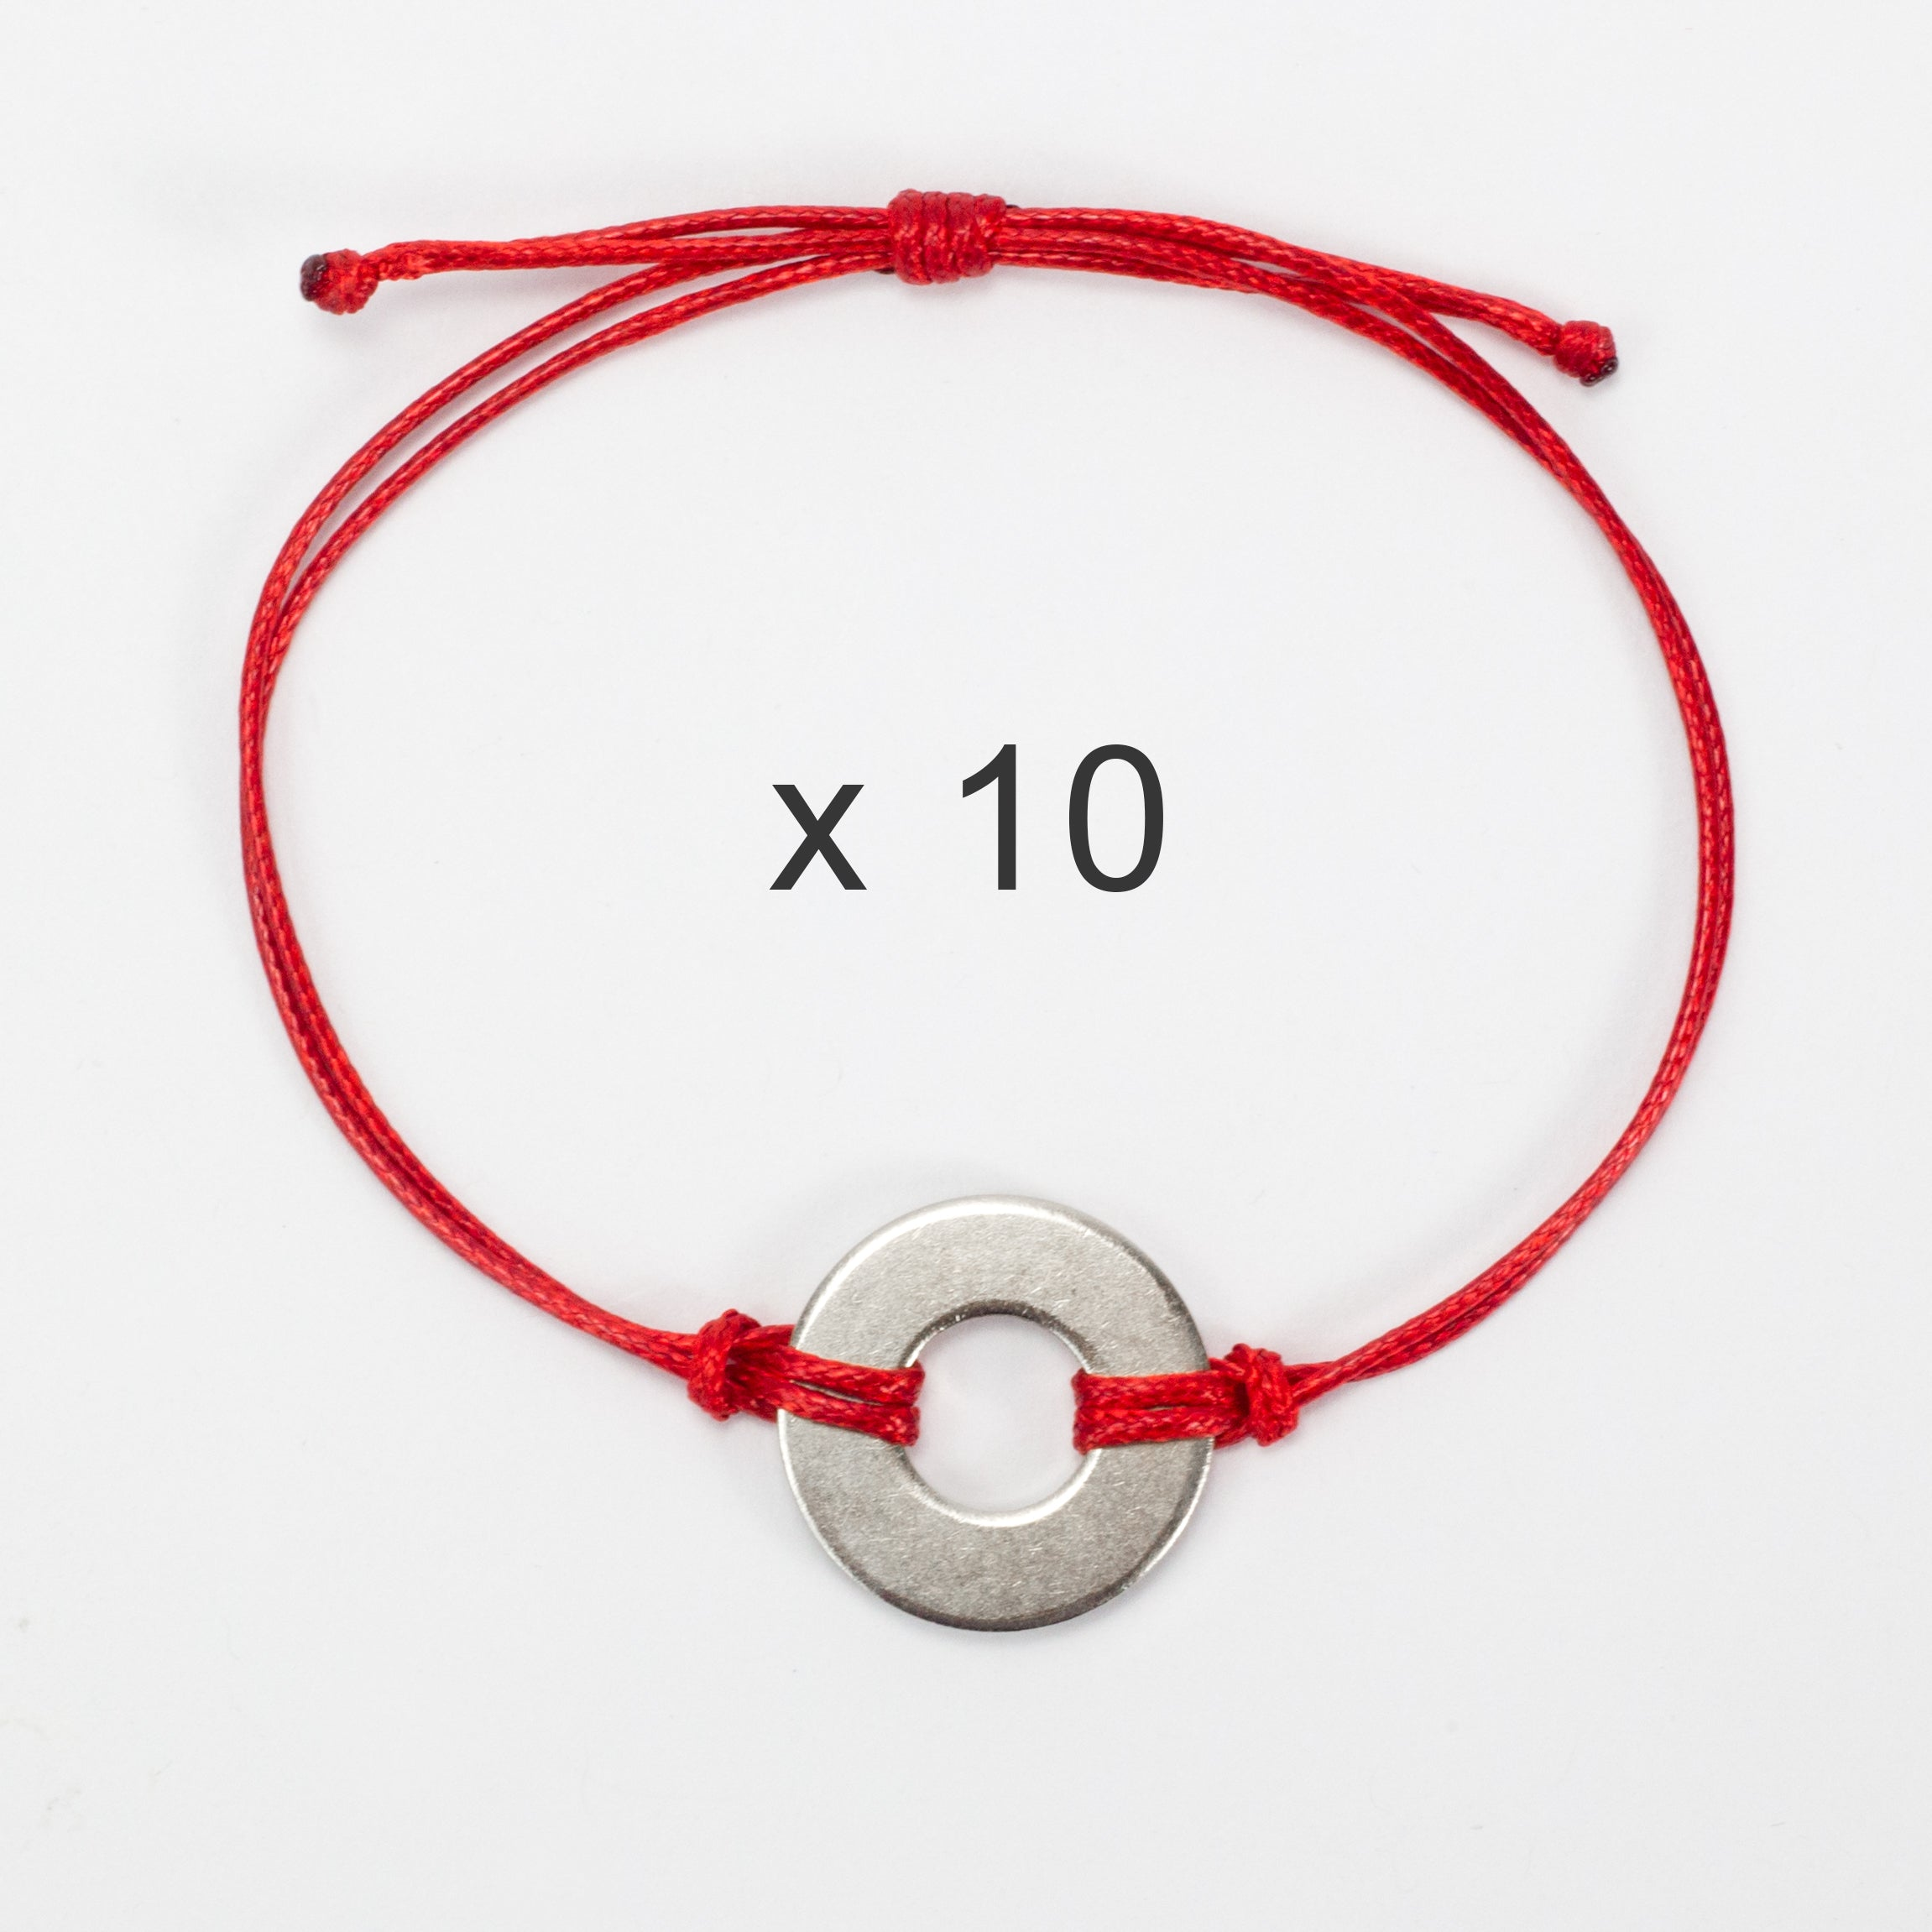 MyIntent Refill Classic Bracelets Red String set of 10 with Nickel tokens